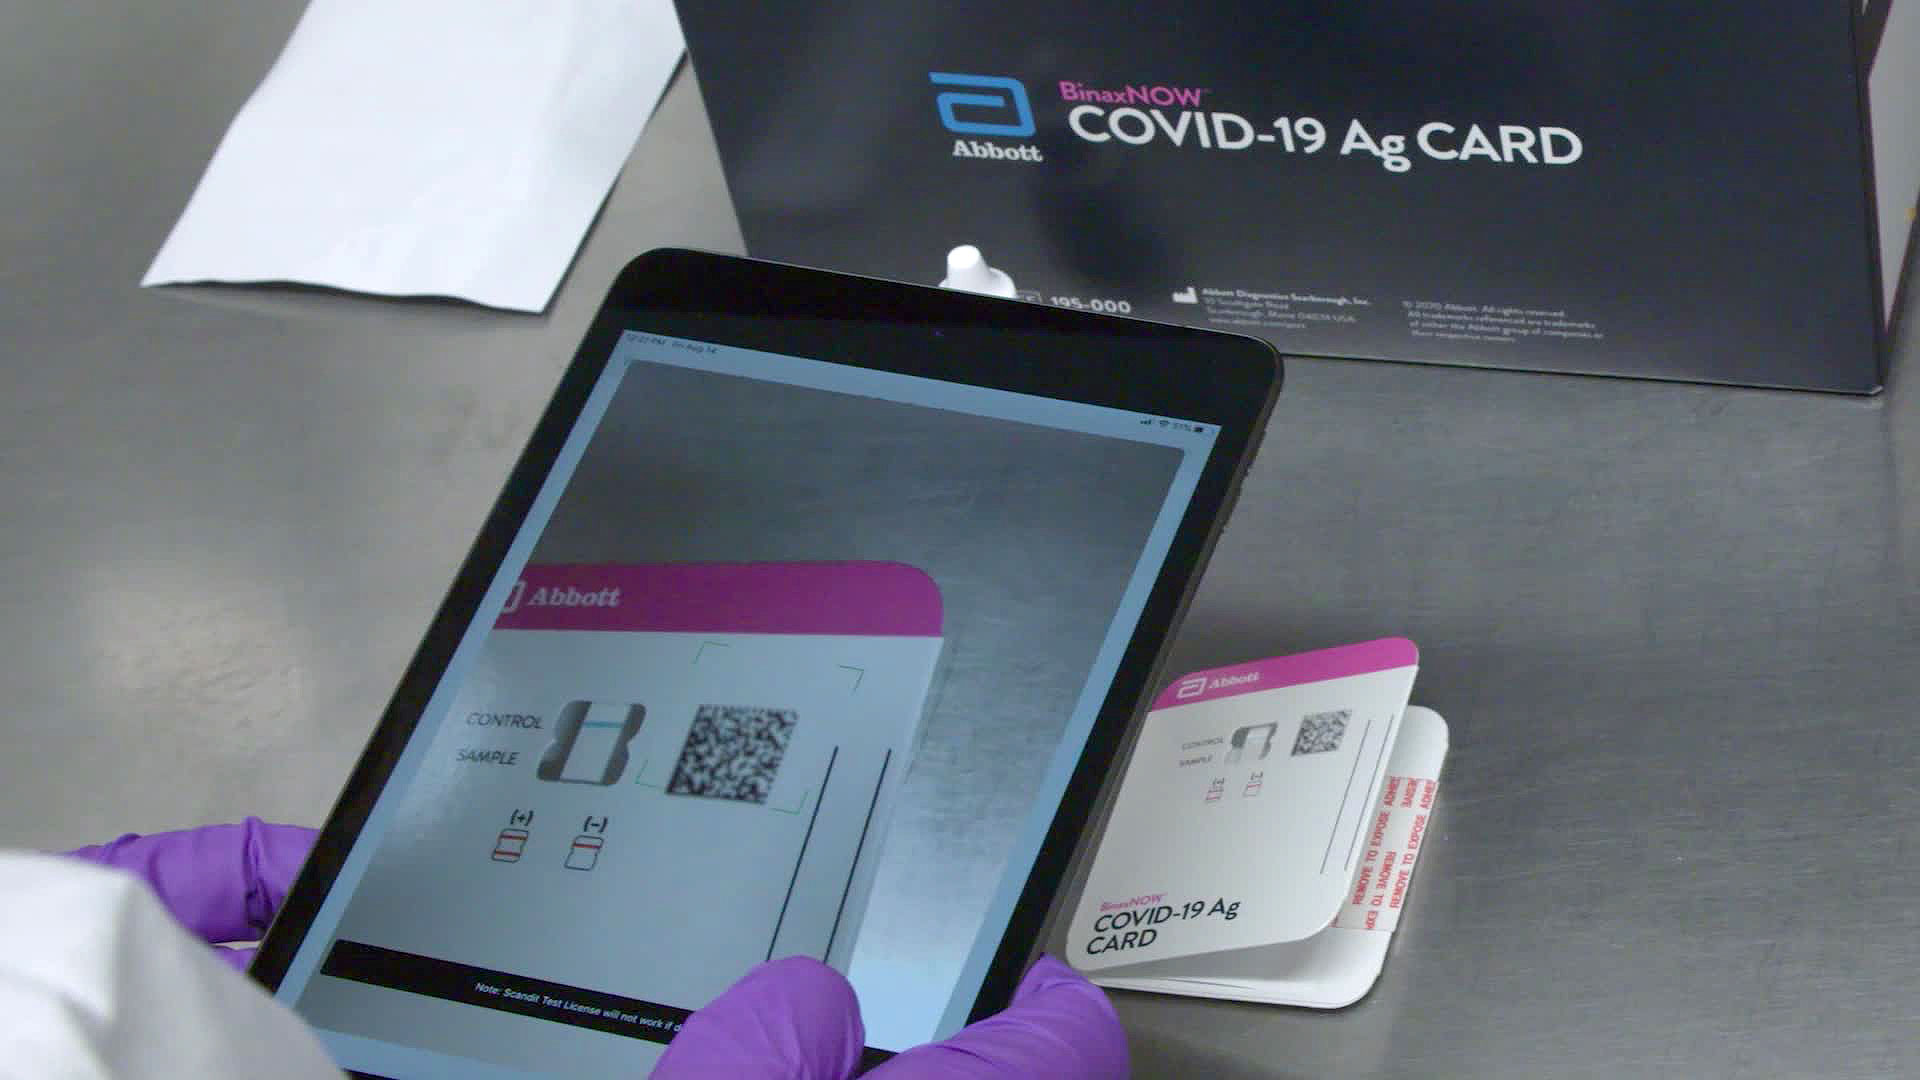 The BinaxNOW Covid-19 Ag Card can detect Covid-19 infection in 15 minutes.